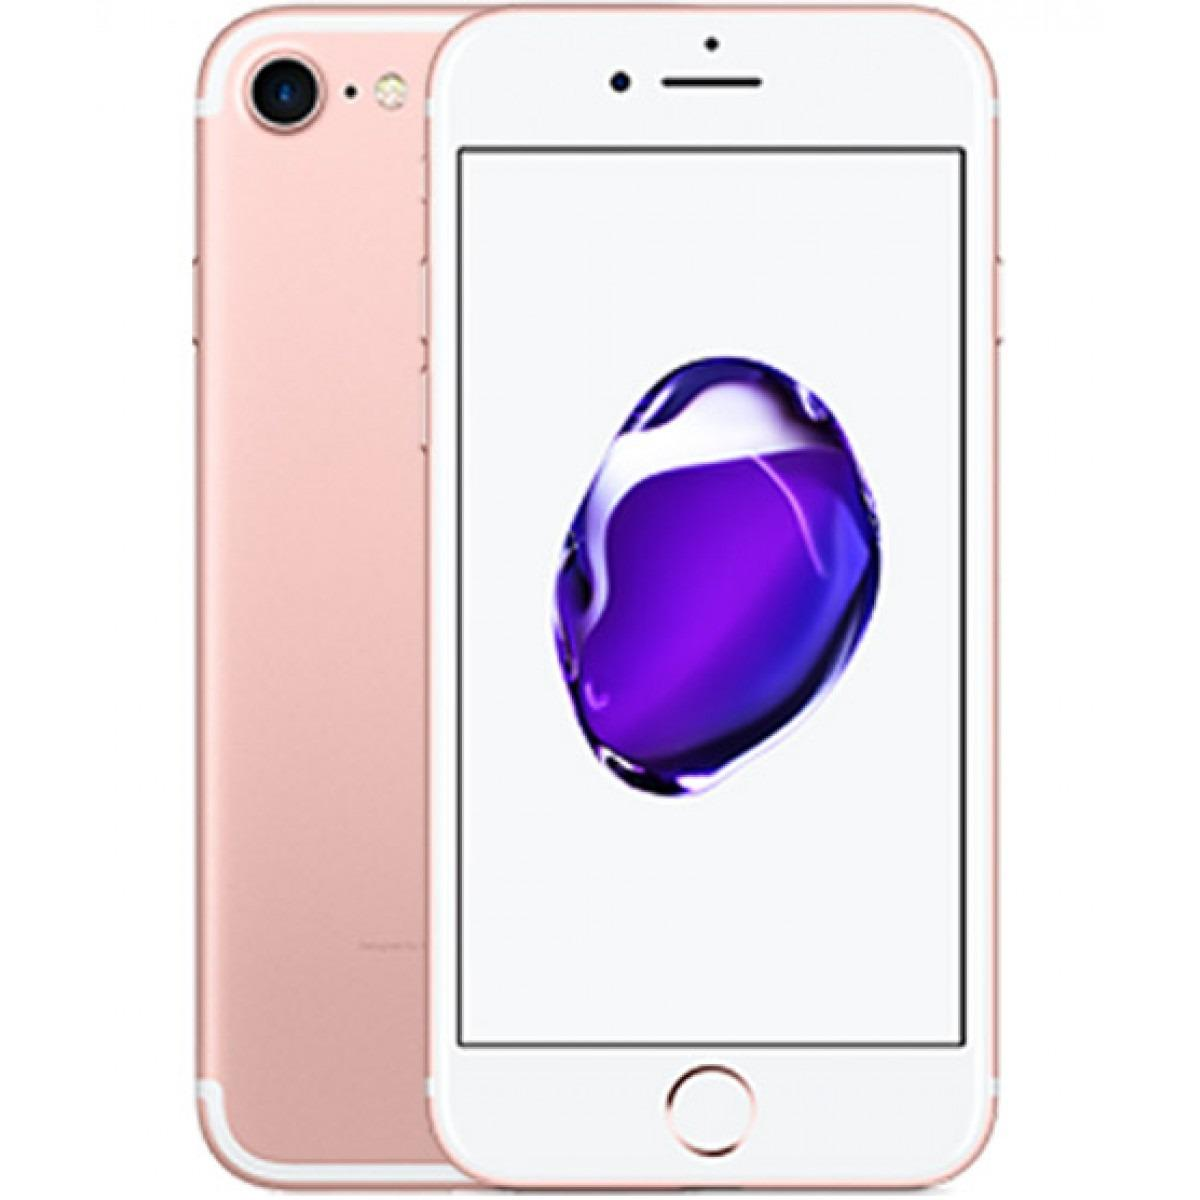 Apple iPhone 7 128 go a vendre